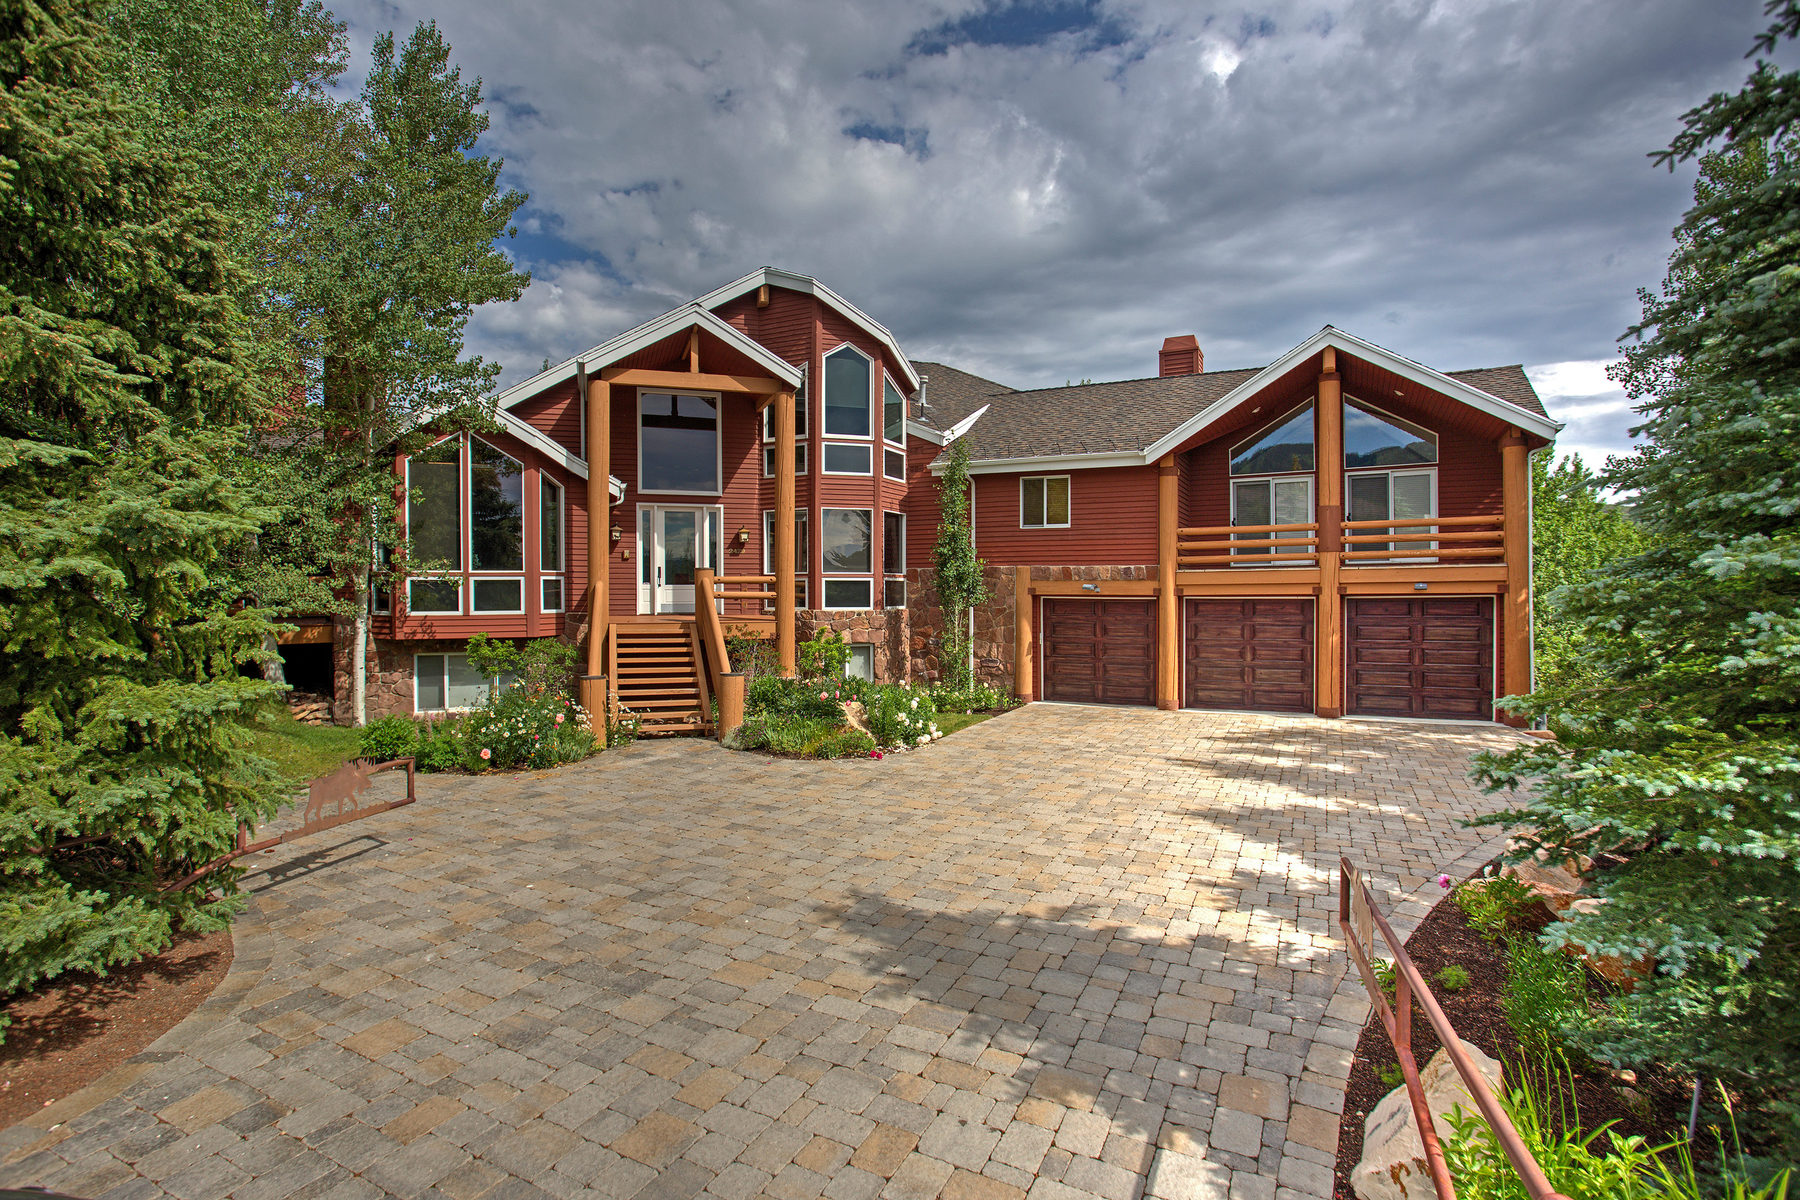 獨棟家庭住宅 為 出售 在 Seclusion and Views in a Prestigious Neighborhood 2429 Iron Canyon Dr Park City, 猶他州, 84060 美國